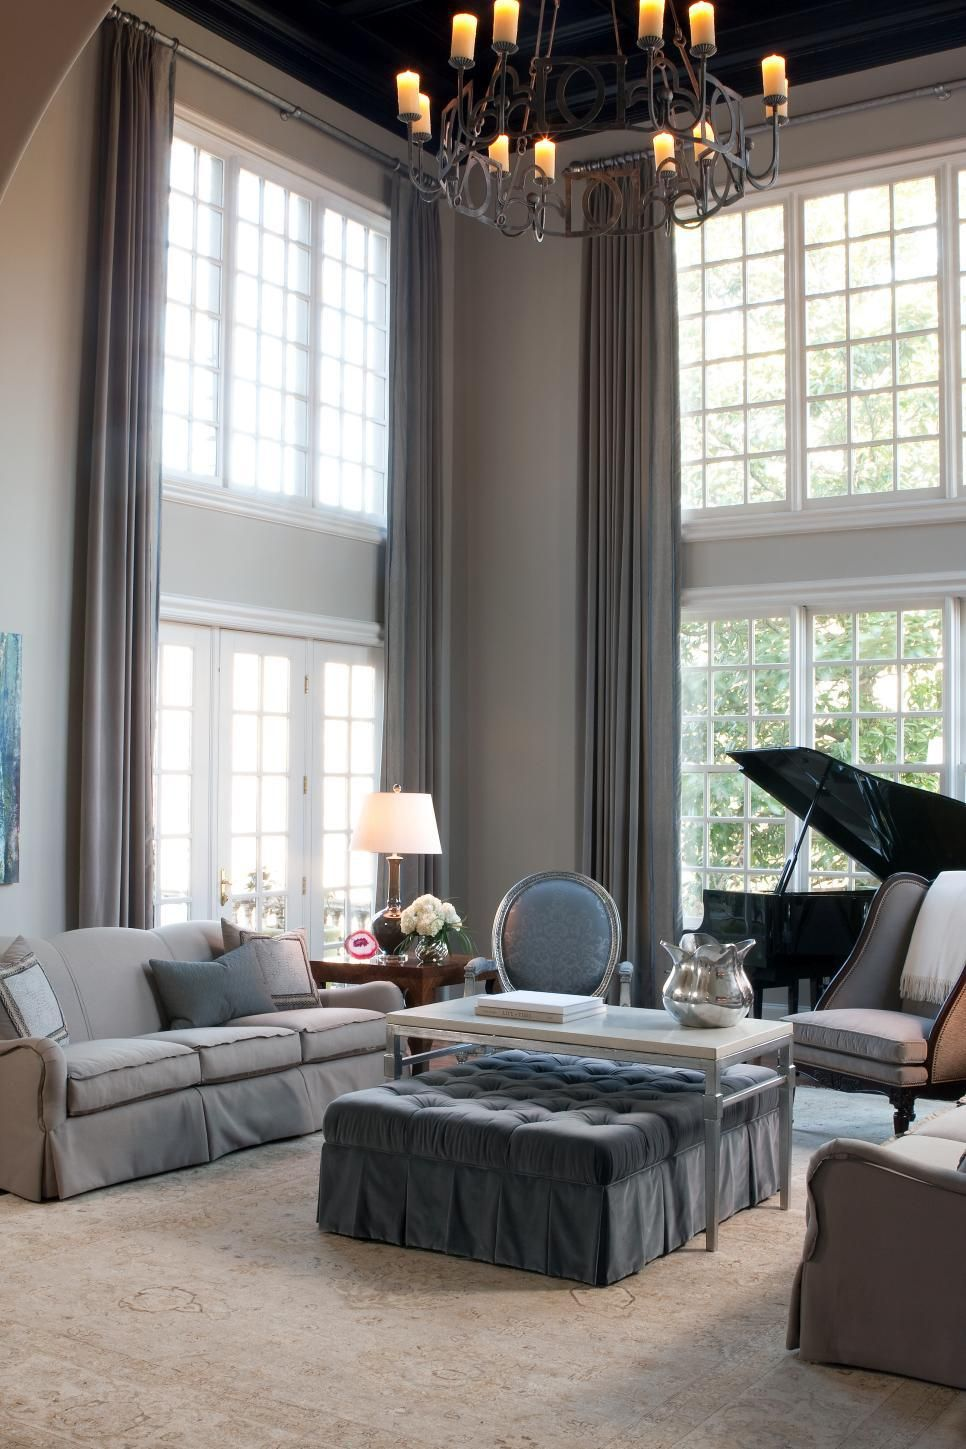 Quatrefoil Mirrors My Third Row of Windows   Kelley Nan   High ...